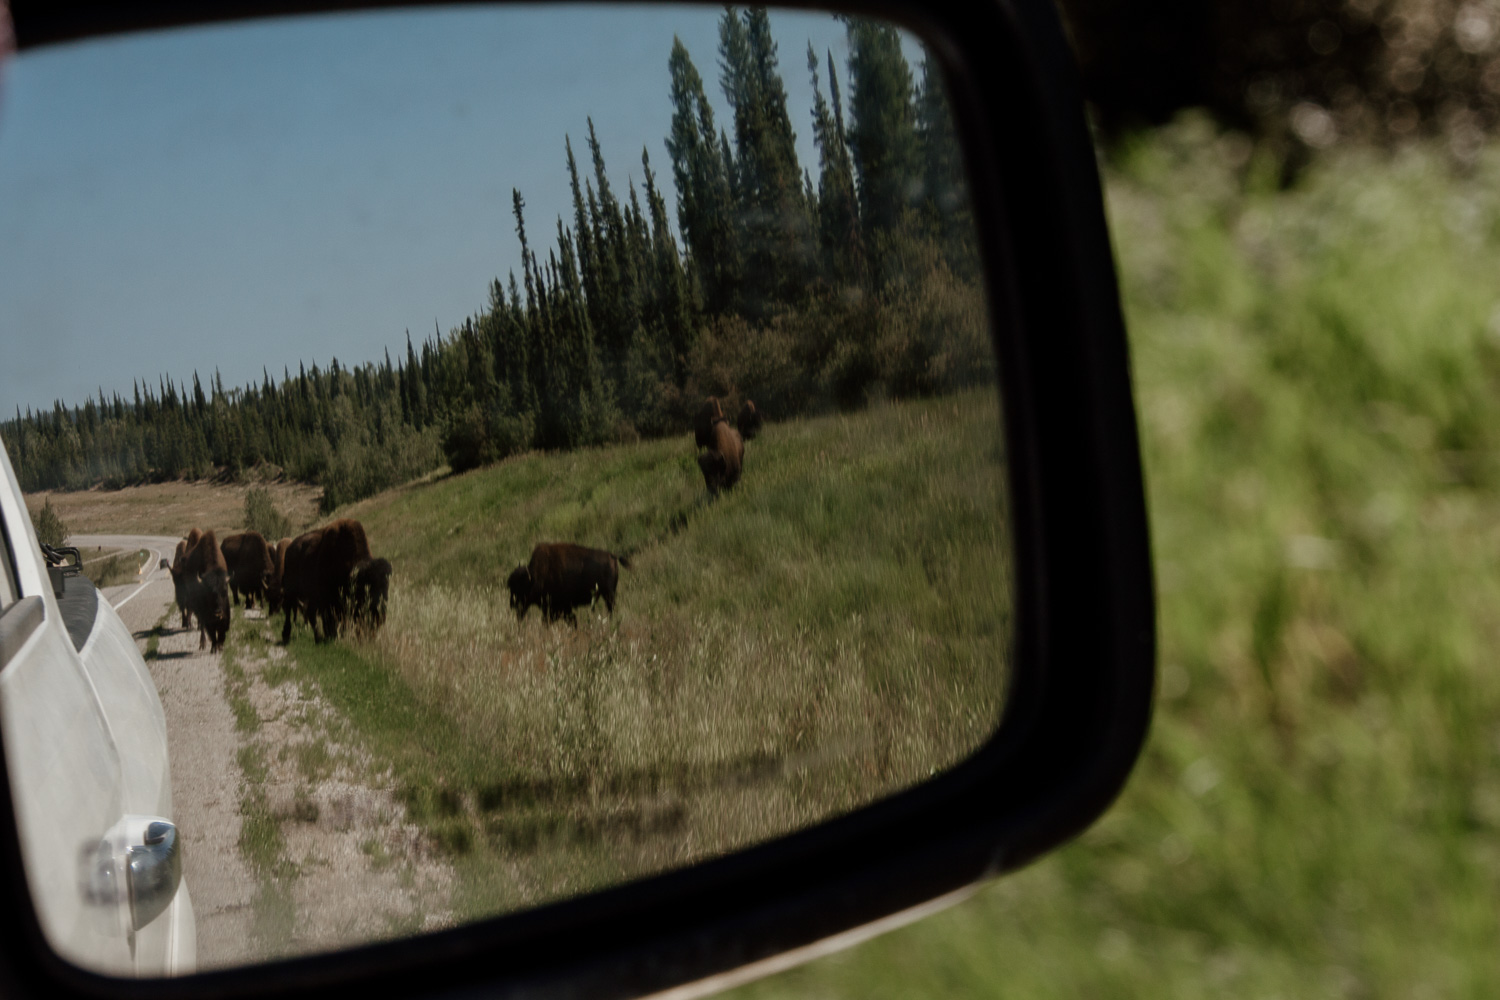 bison-alaska-highway-mirror.jpg